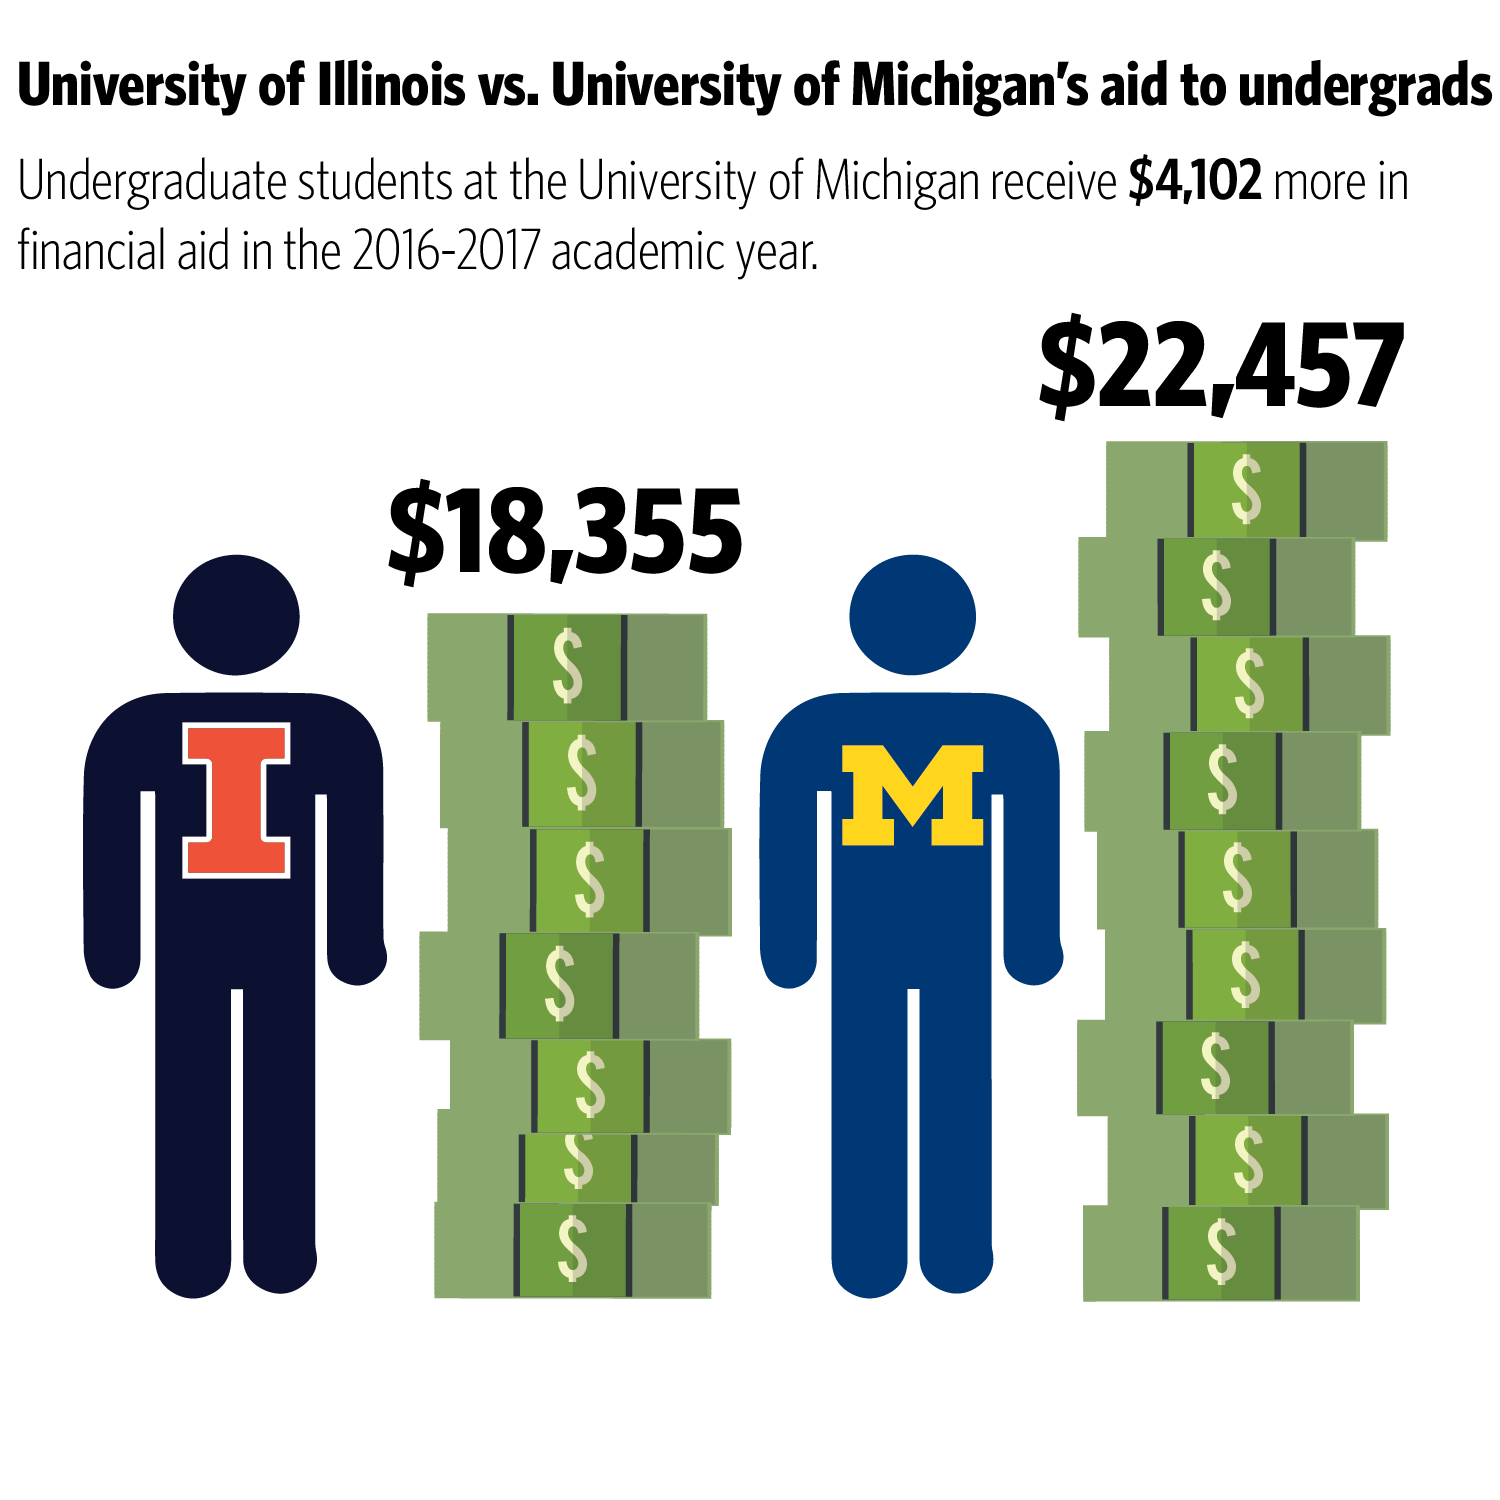 Source: Office of Financial Aid